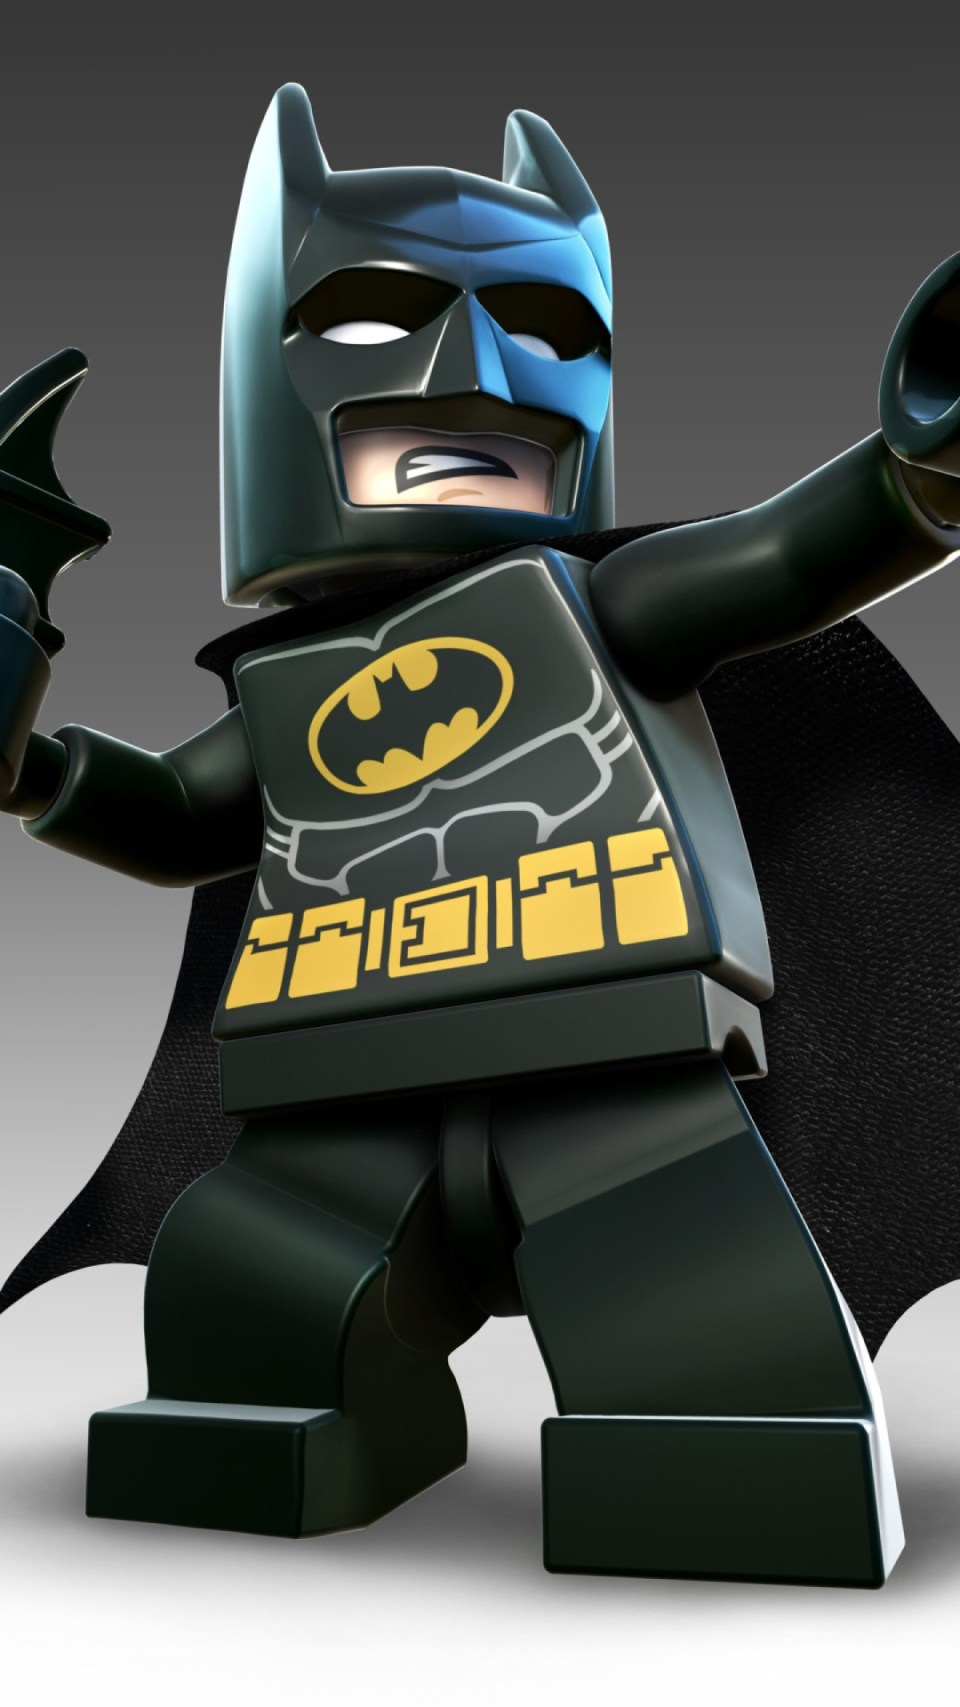 Super-Heroes-Lego-Batman-1080x1920